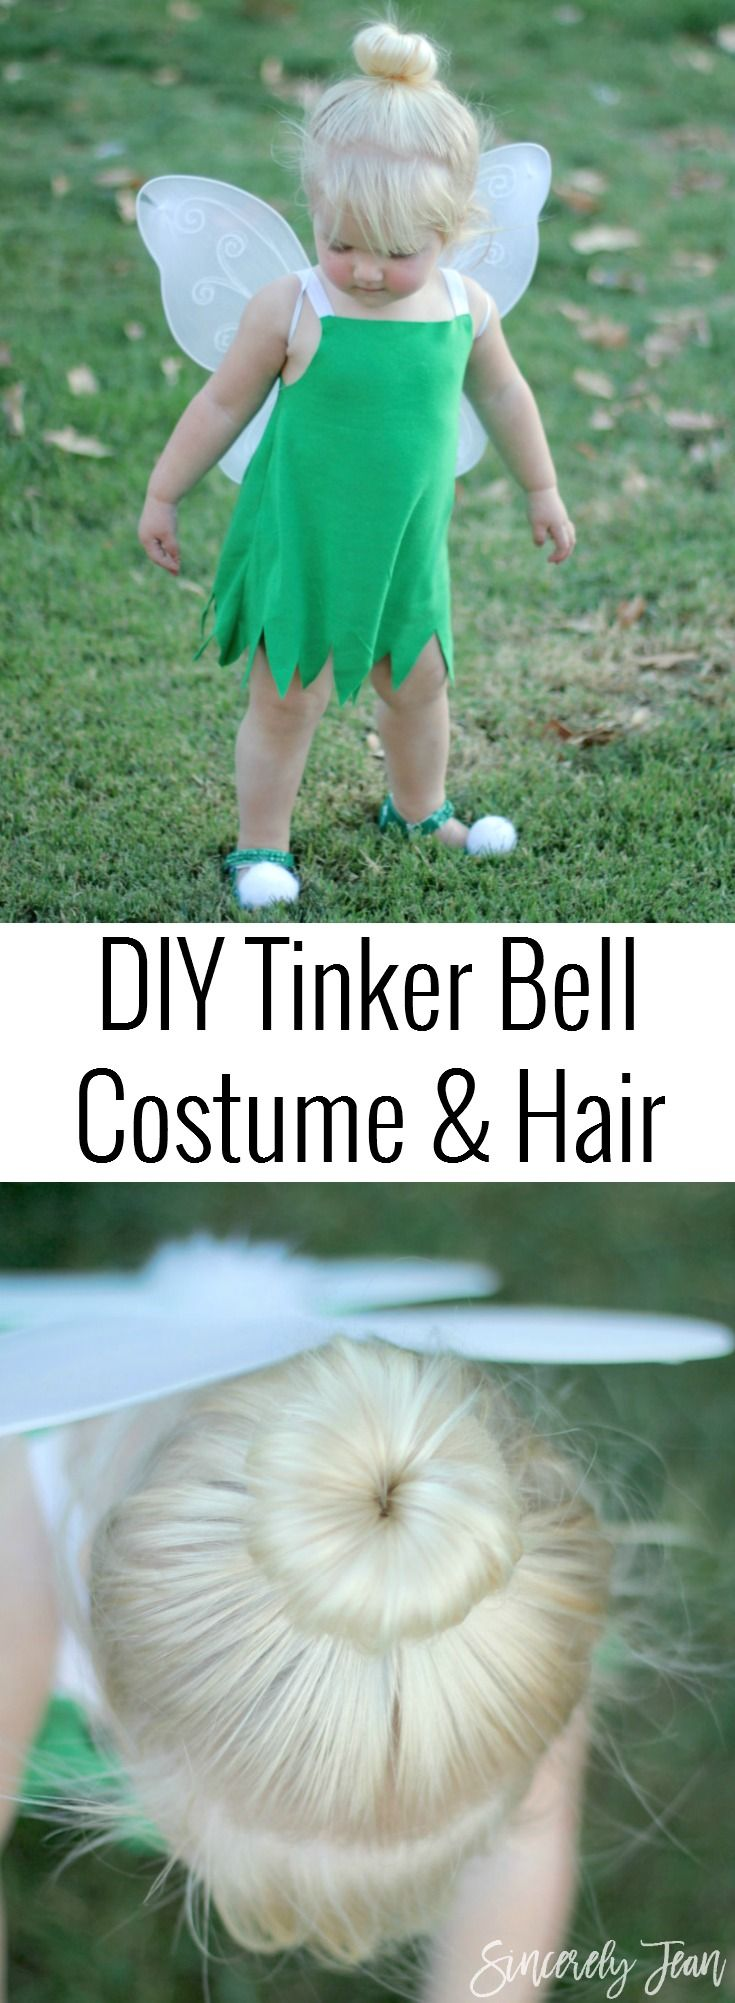 Toddler Halloween Costume - DIY Toddler Tinker Bell Costume and Hair - Simple and cute tutorial on how to make a toddler Tinker Bell costume and tips for doing the hair! | www.sincerelyjean.com